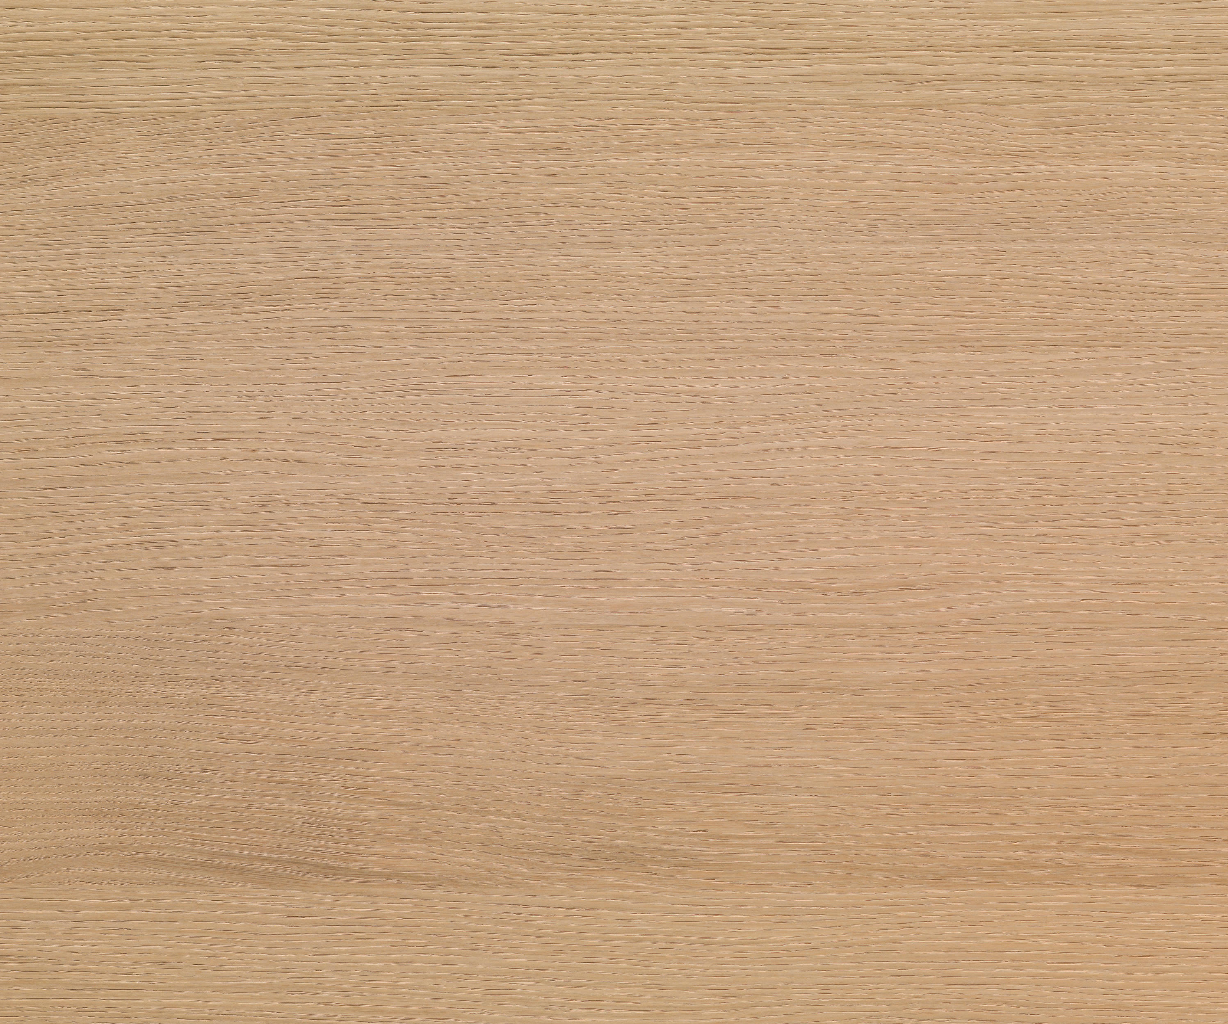 Shinnoki Ivory Oak